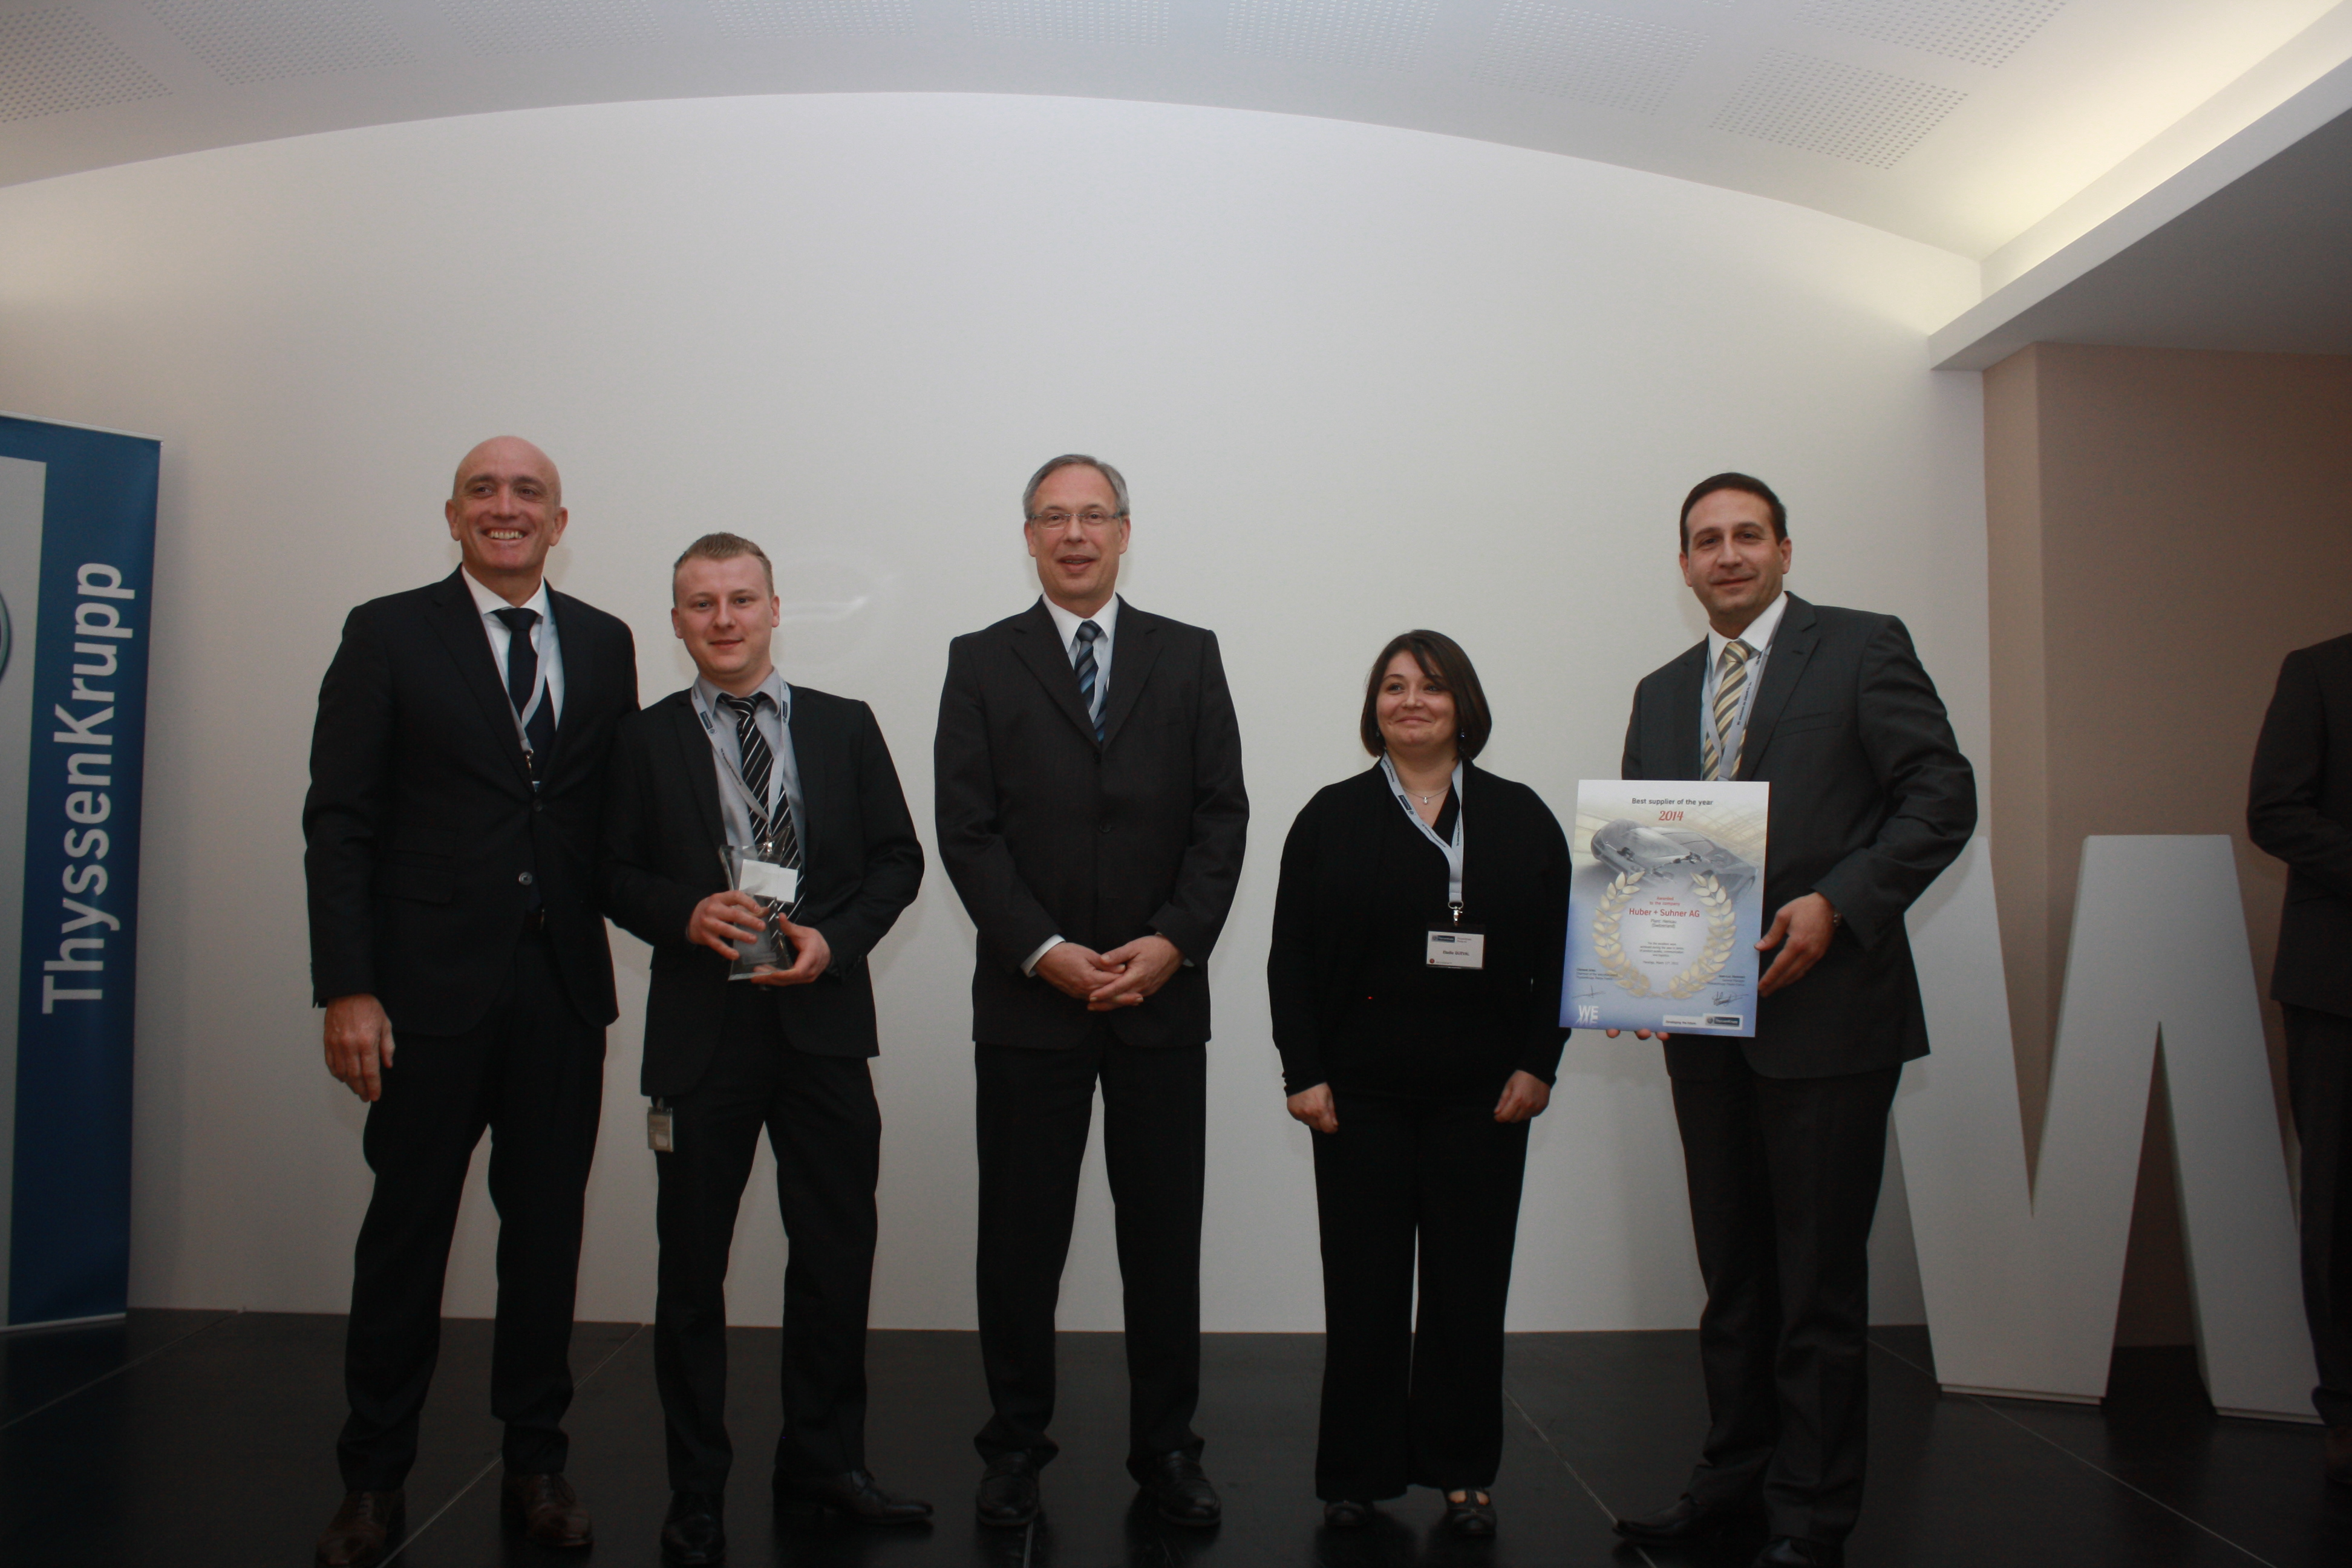 HUBER+SUHNER receives best supplier award from ThyssenKrupp Presta France S.A.S.